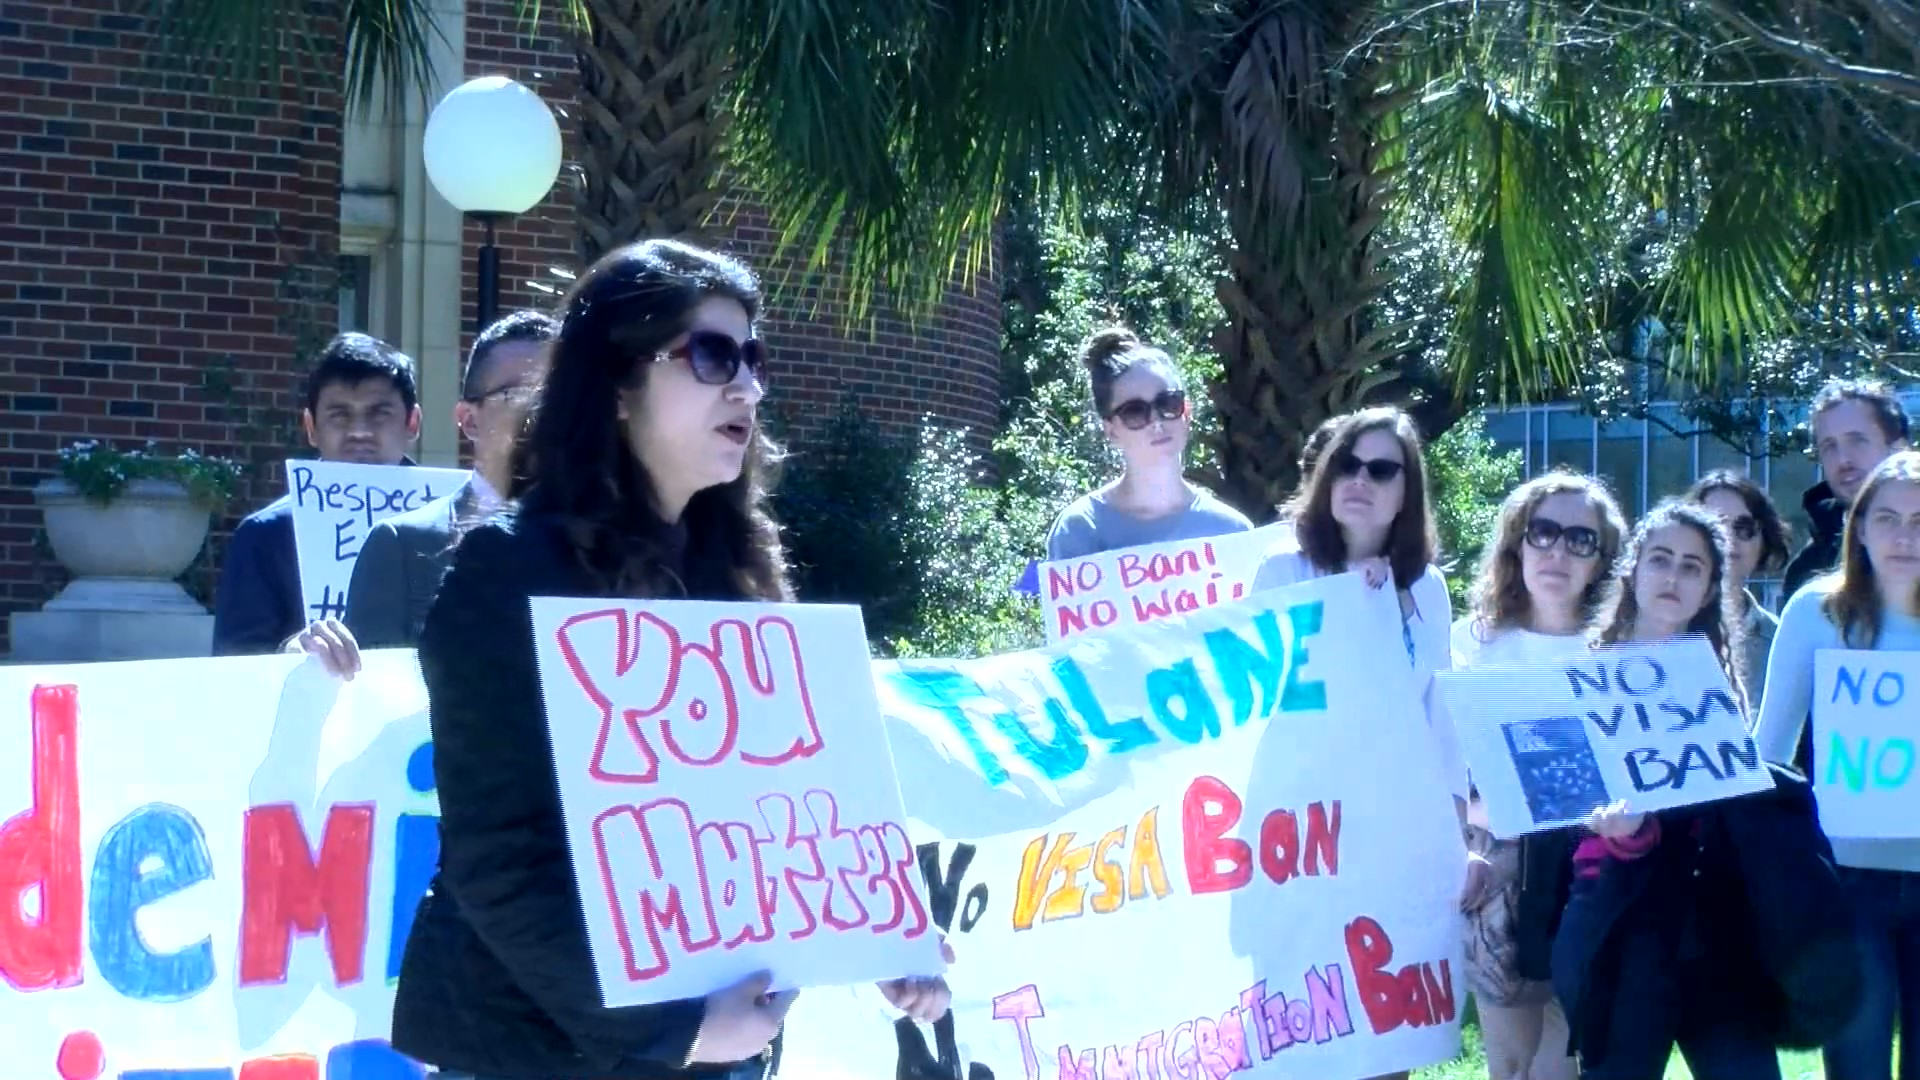 Students, faculty and staff denounce President Trump's executive order travel ban at an Academics United demonstration at Tulane University. An immigrant from Pakistan spoke to demonstrators about issues she faces as an immigrant in the U.S. Photo credit: Alliciyia George